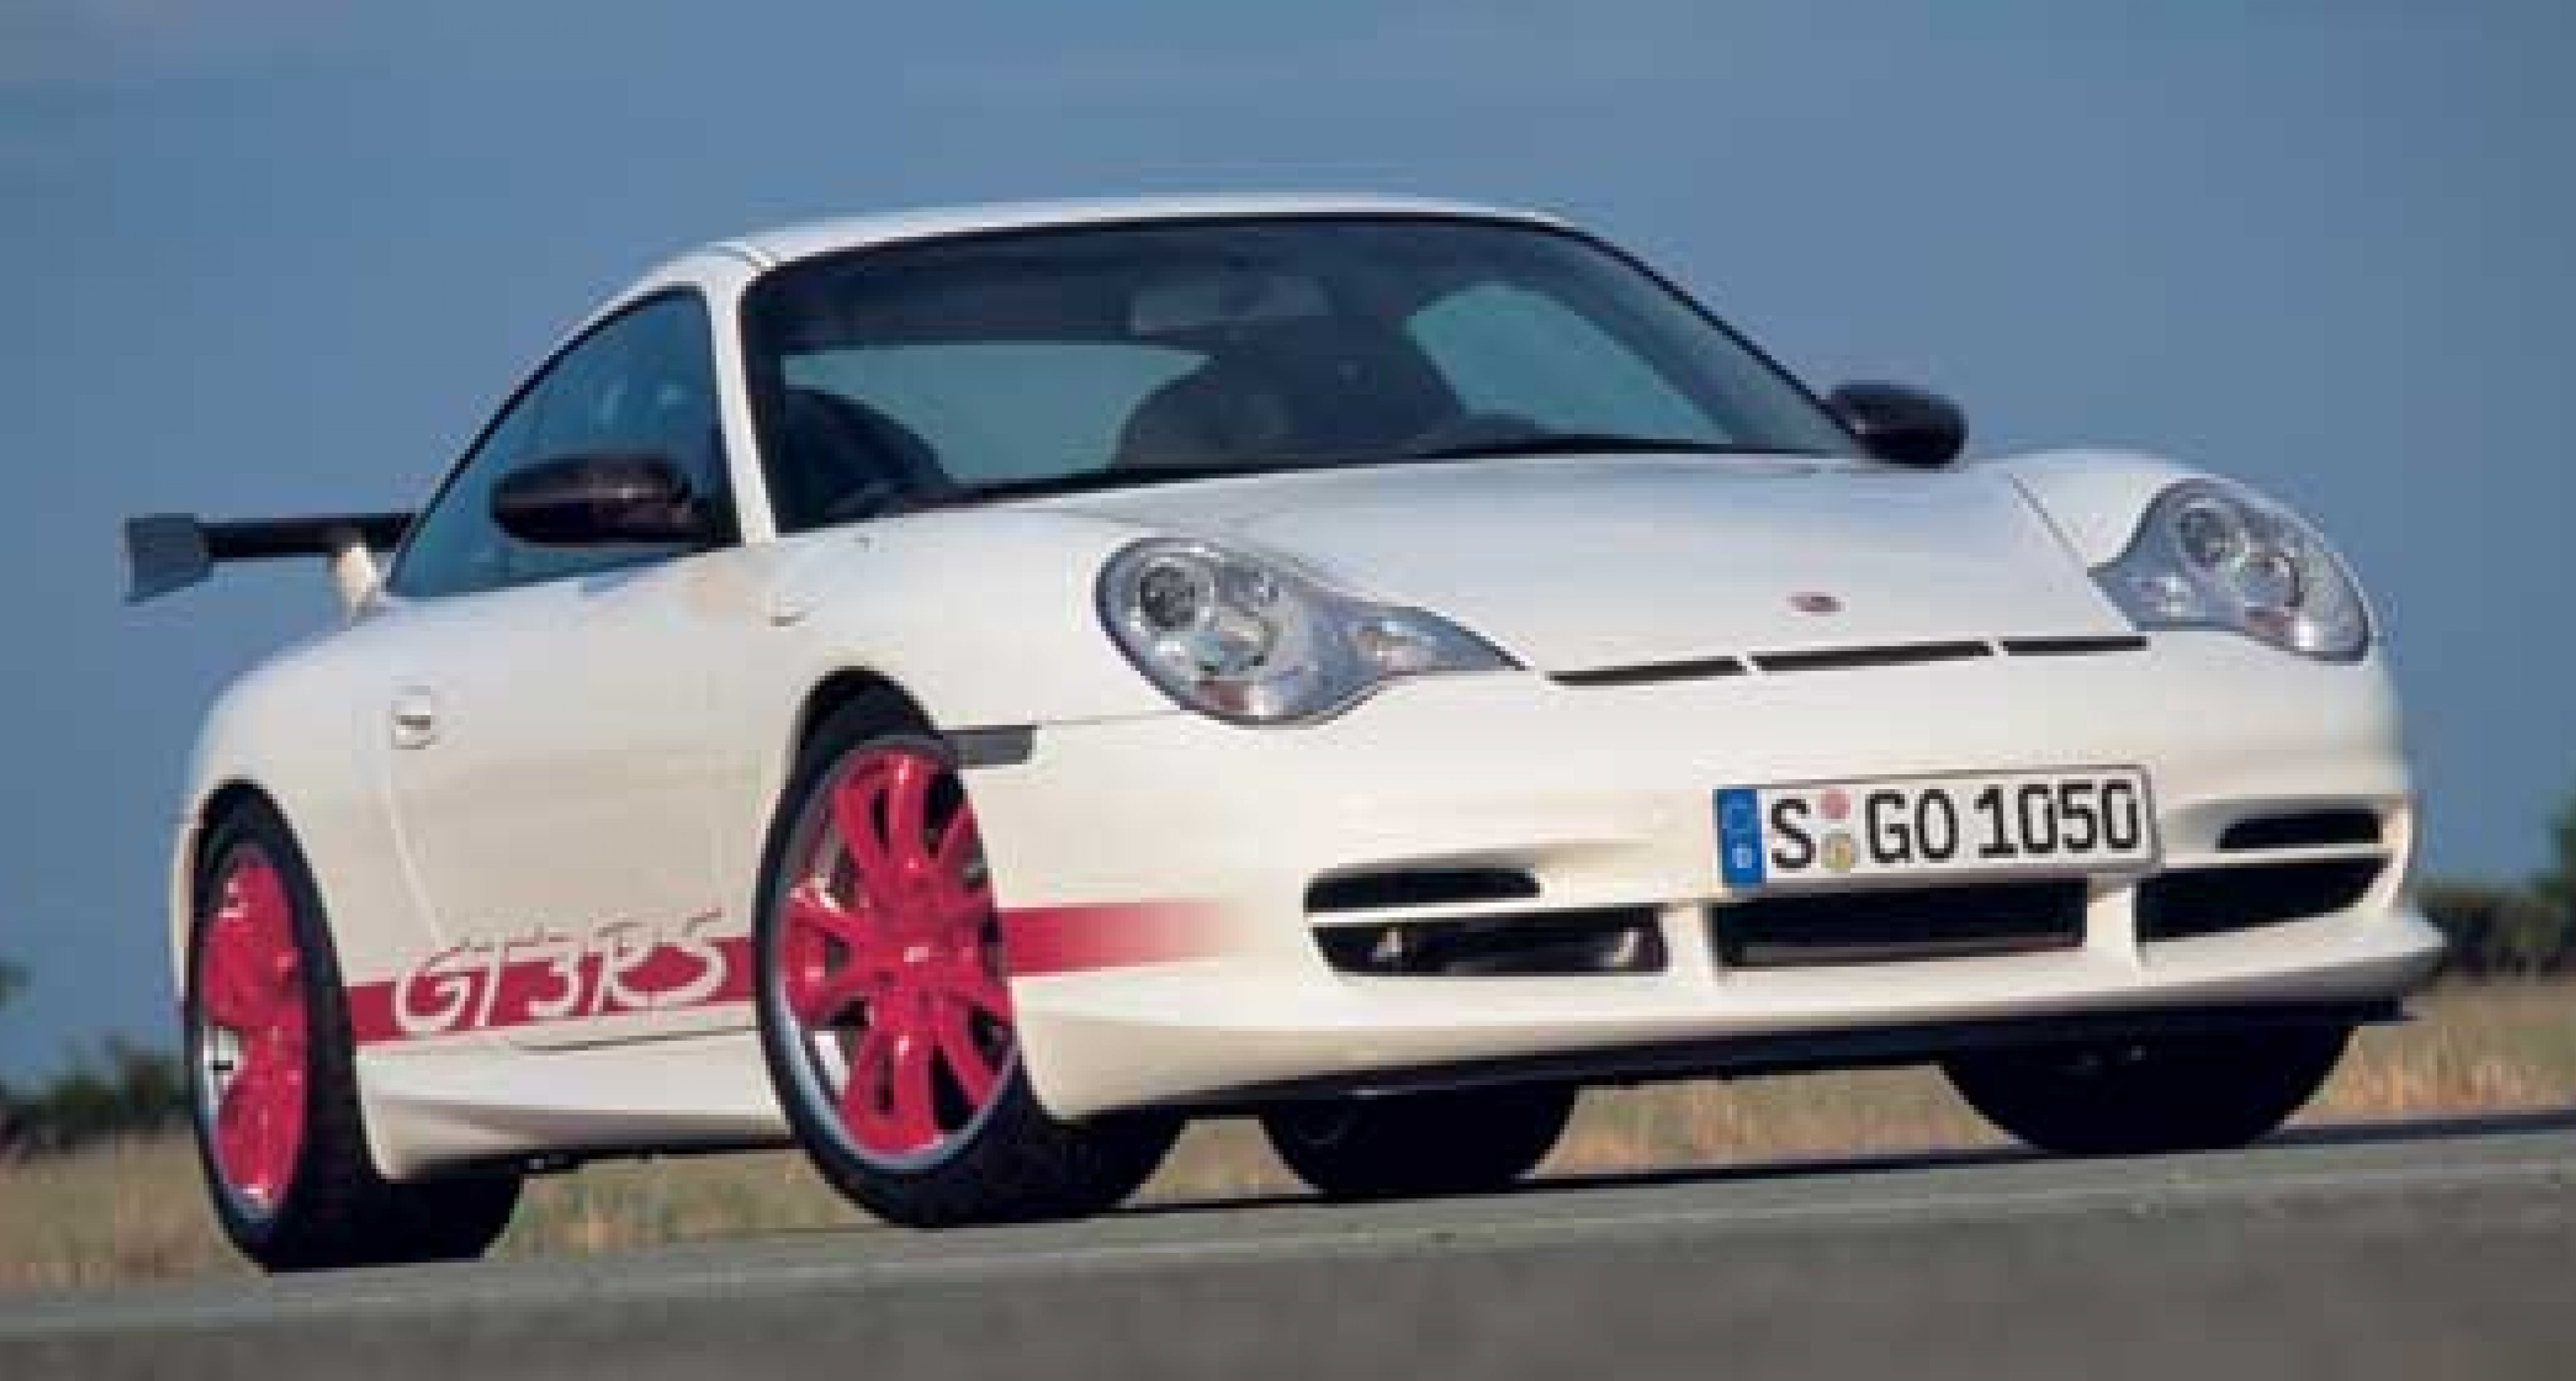 30 years on - Porsche announces 911 GT3 RS for October